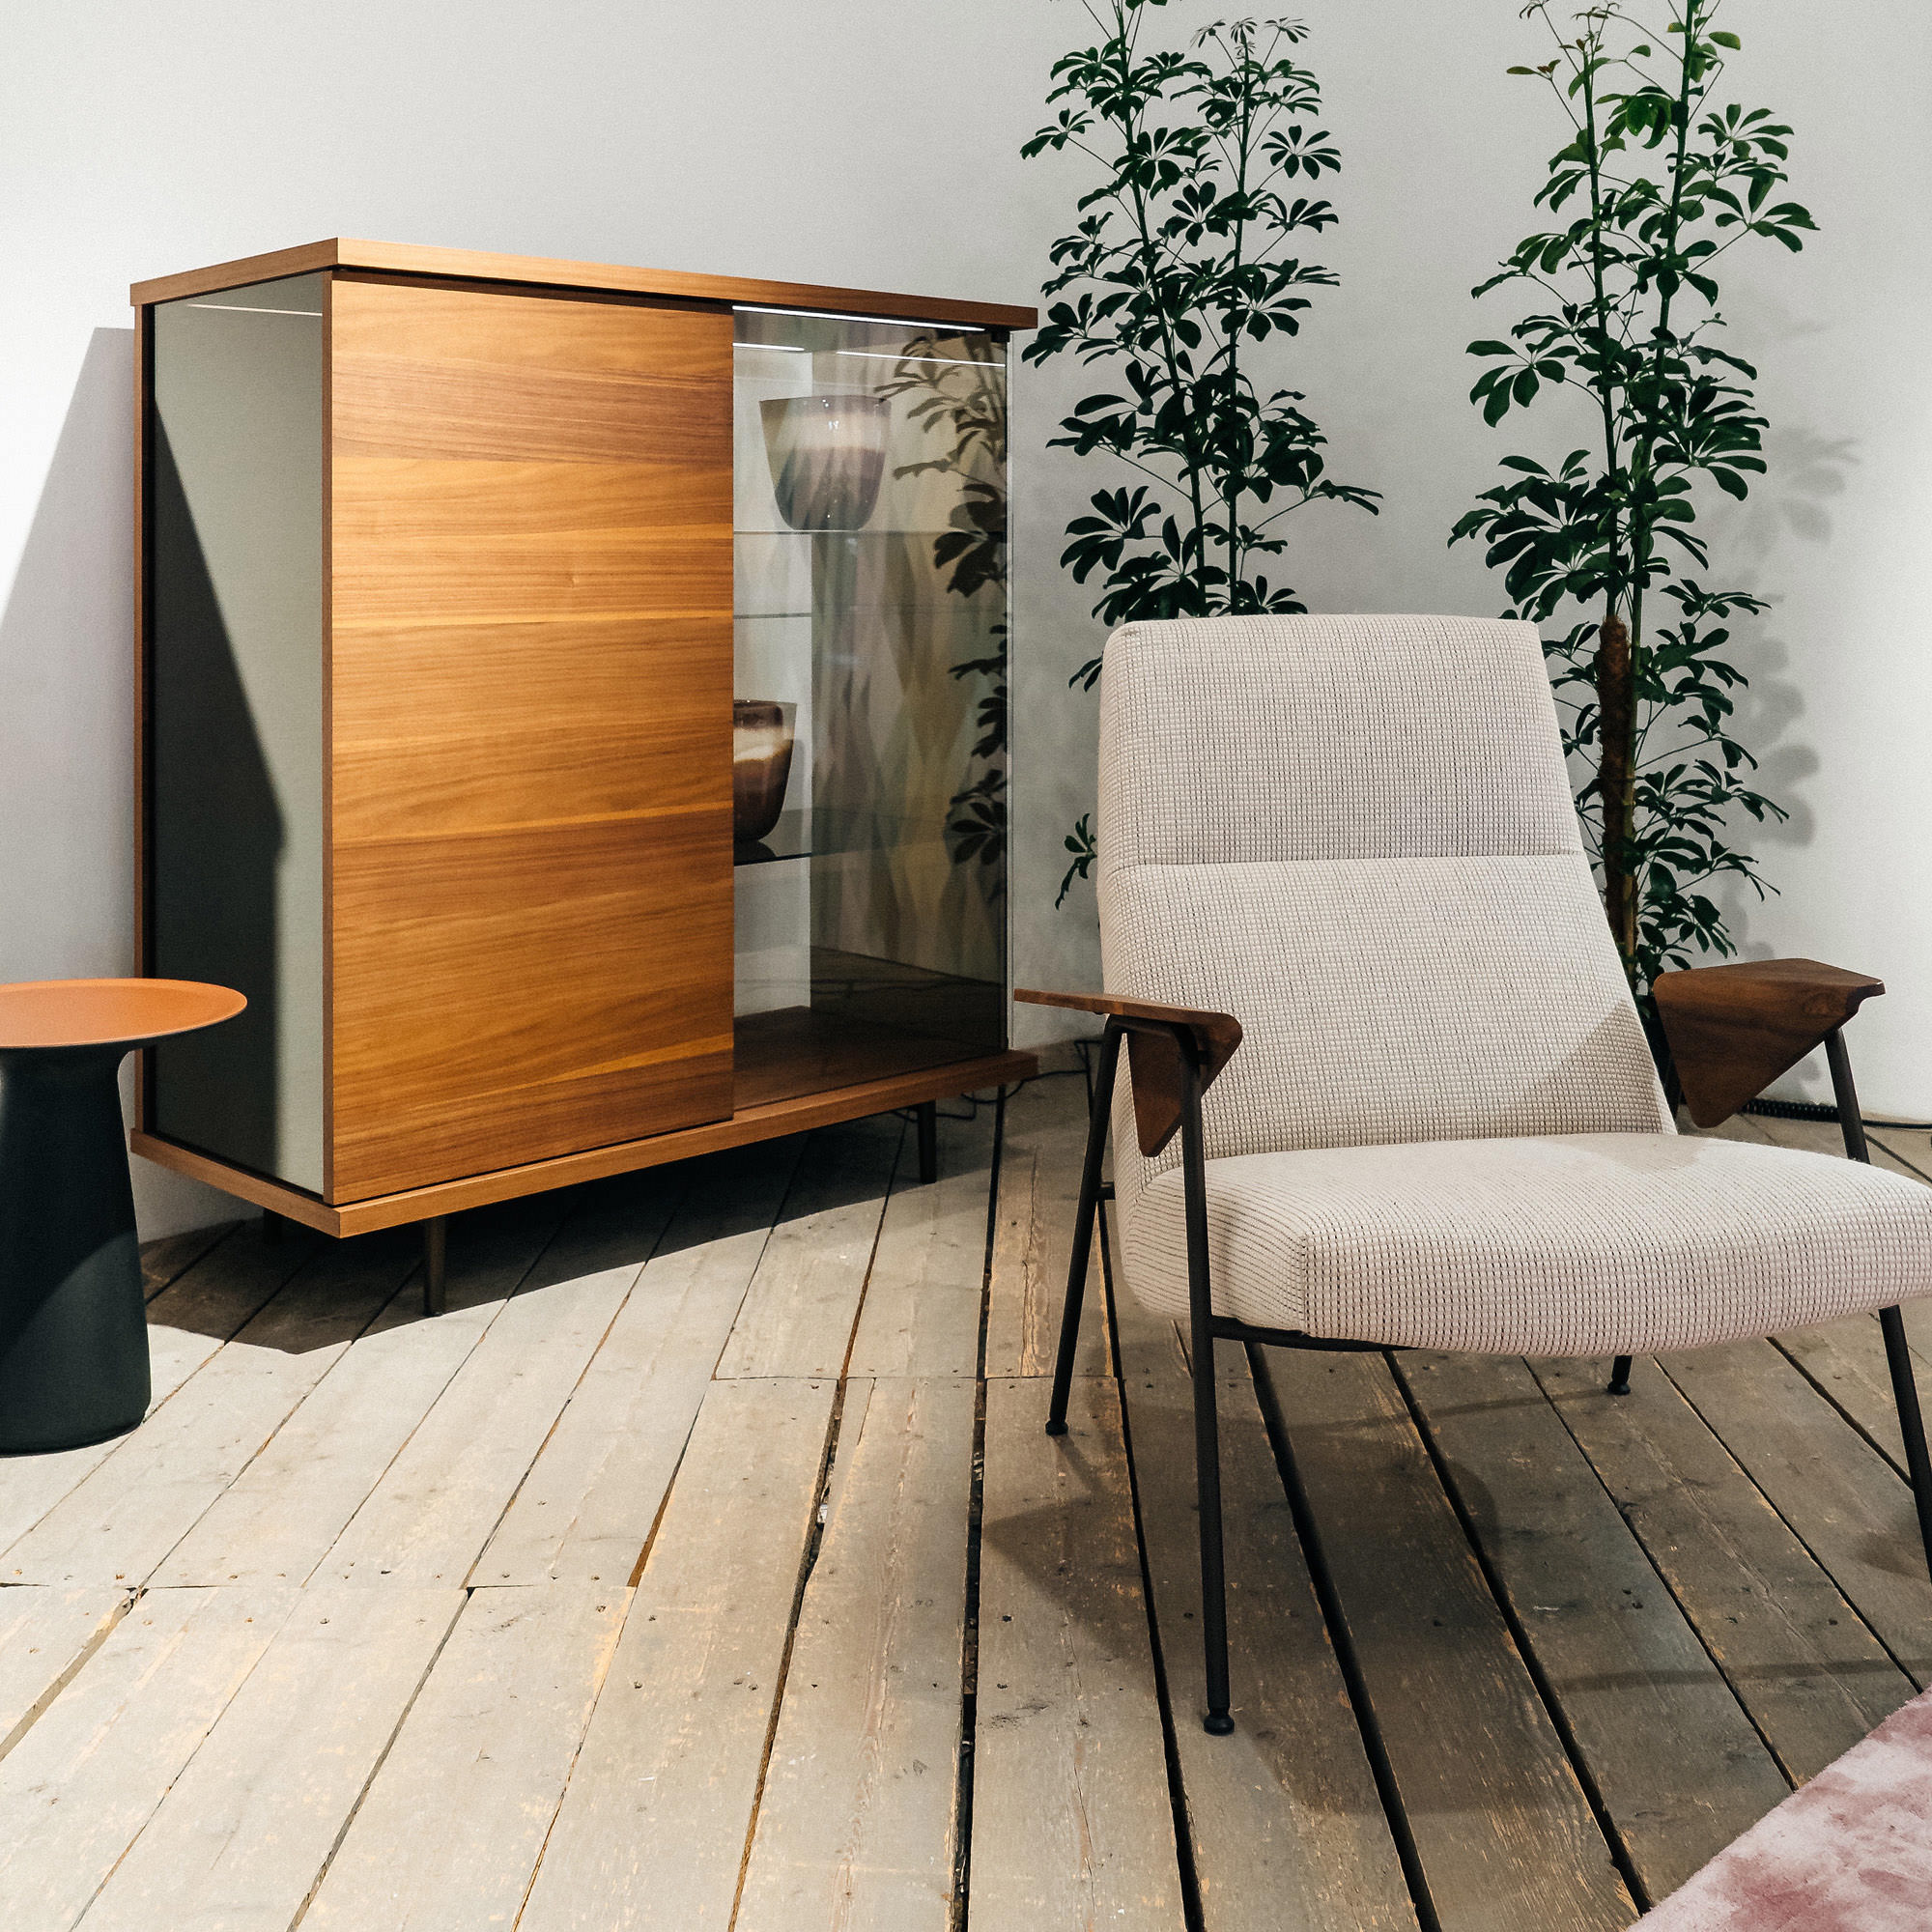 Walter Knoll Sessel Votteler und Kommode The Farns